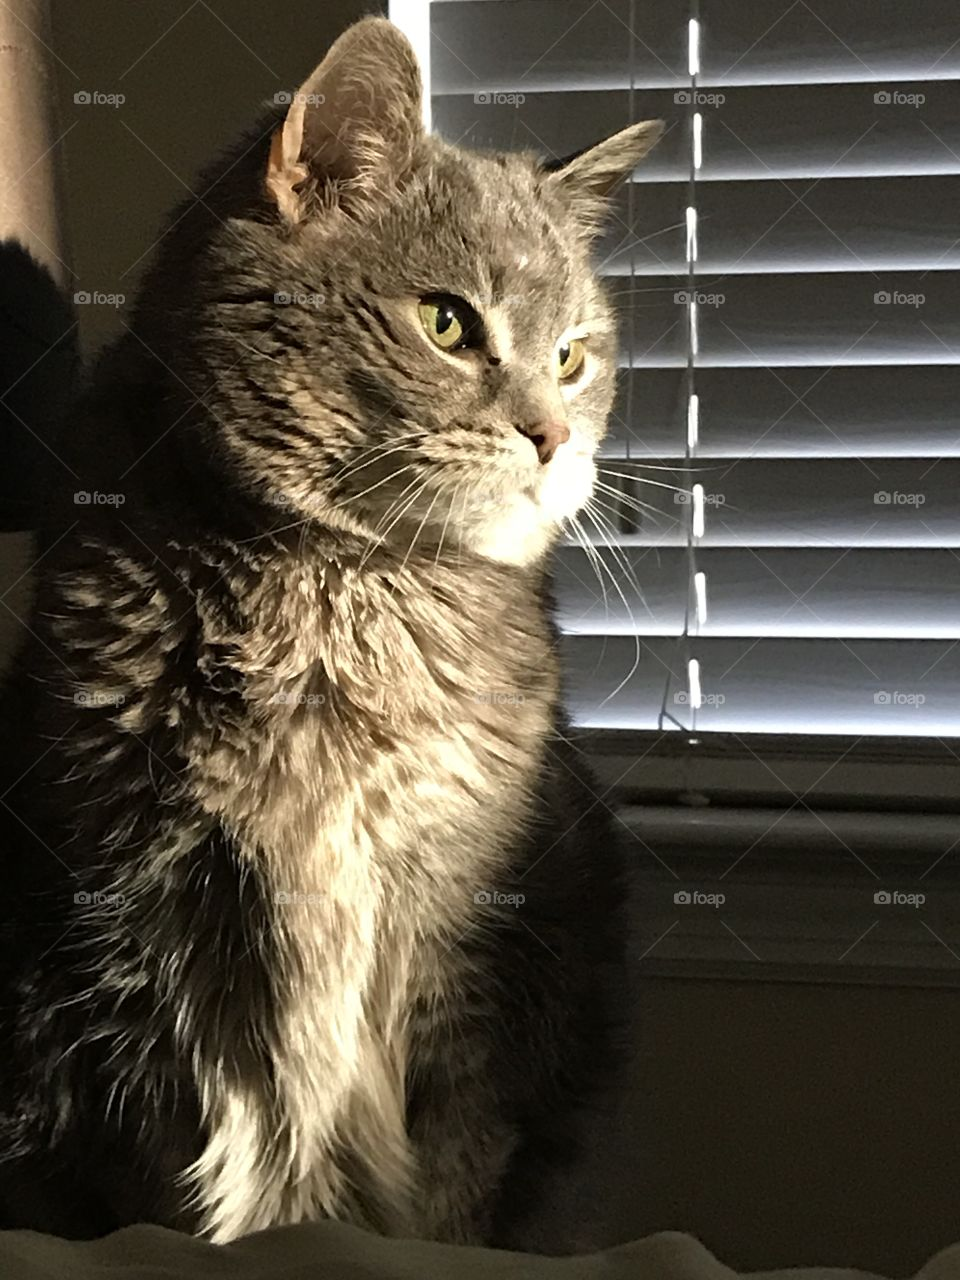 Sun light peering through the window onto a cat.  Beautiful cat picture for people who love cats.